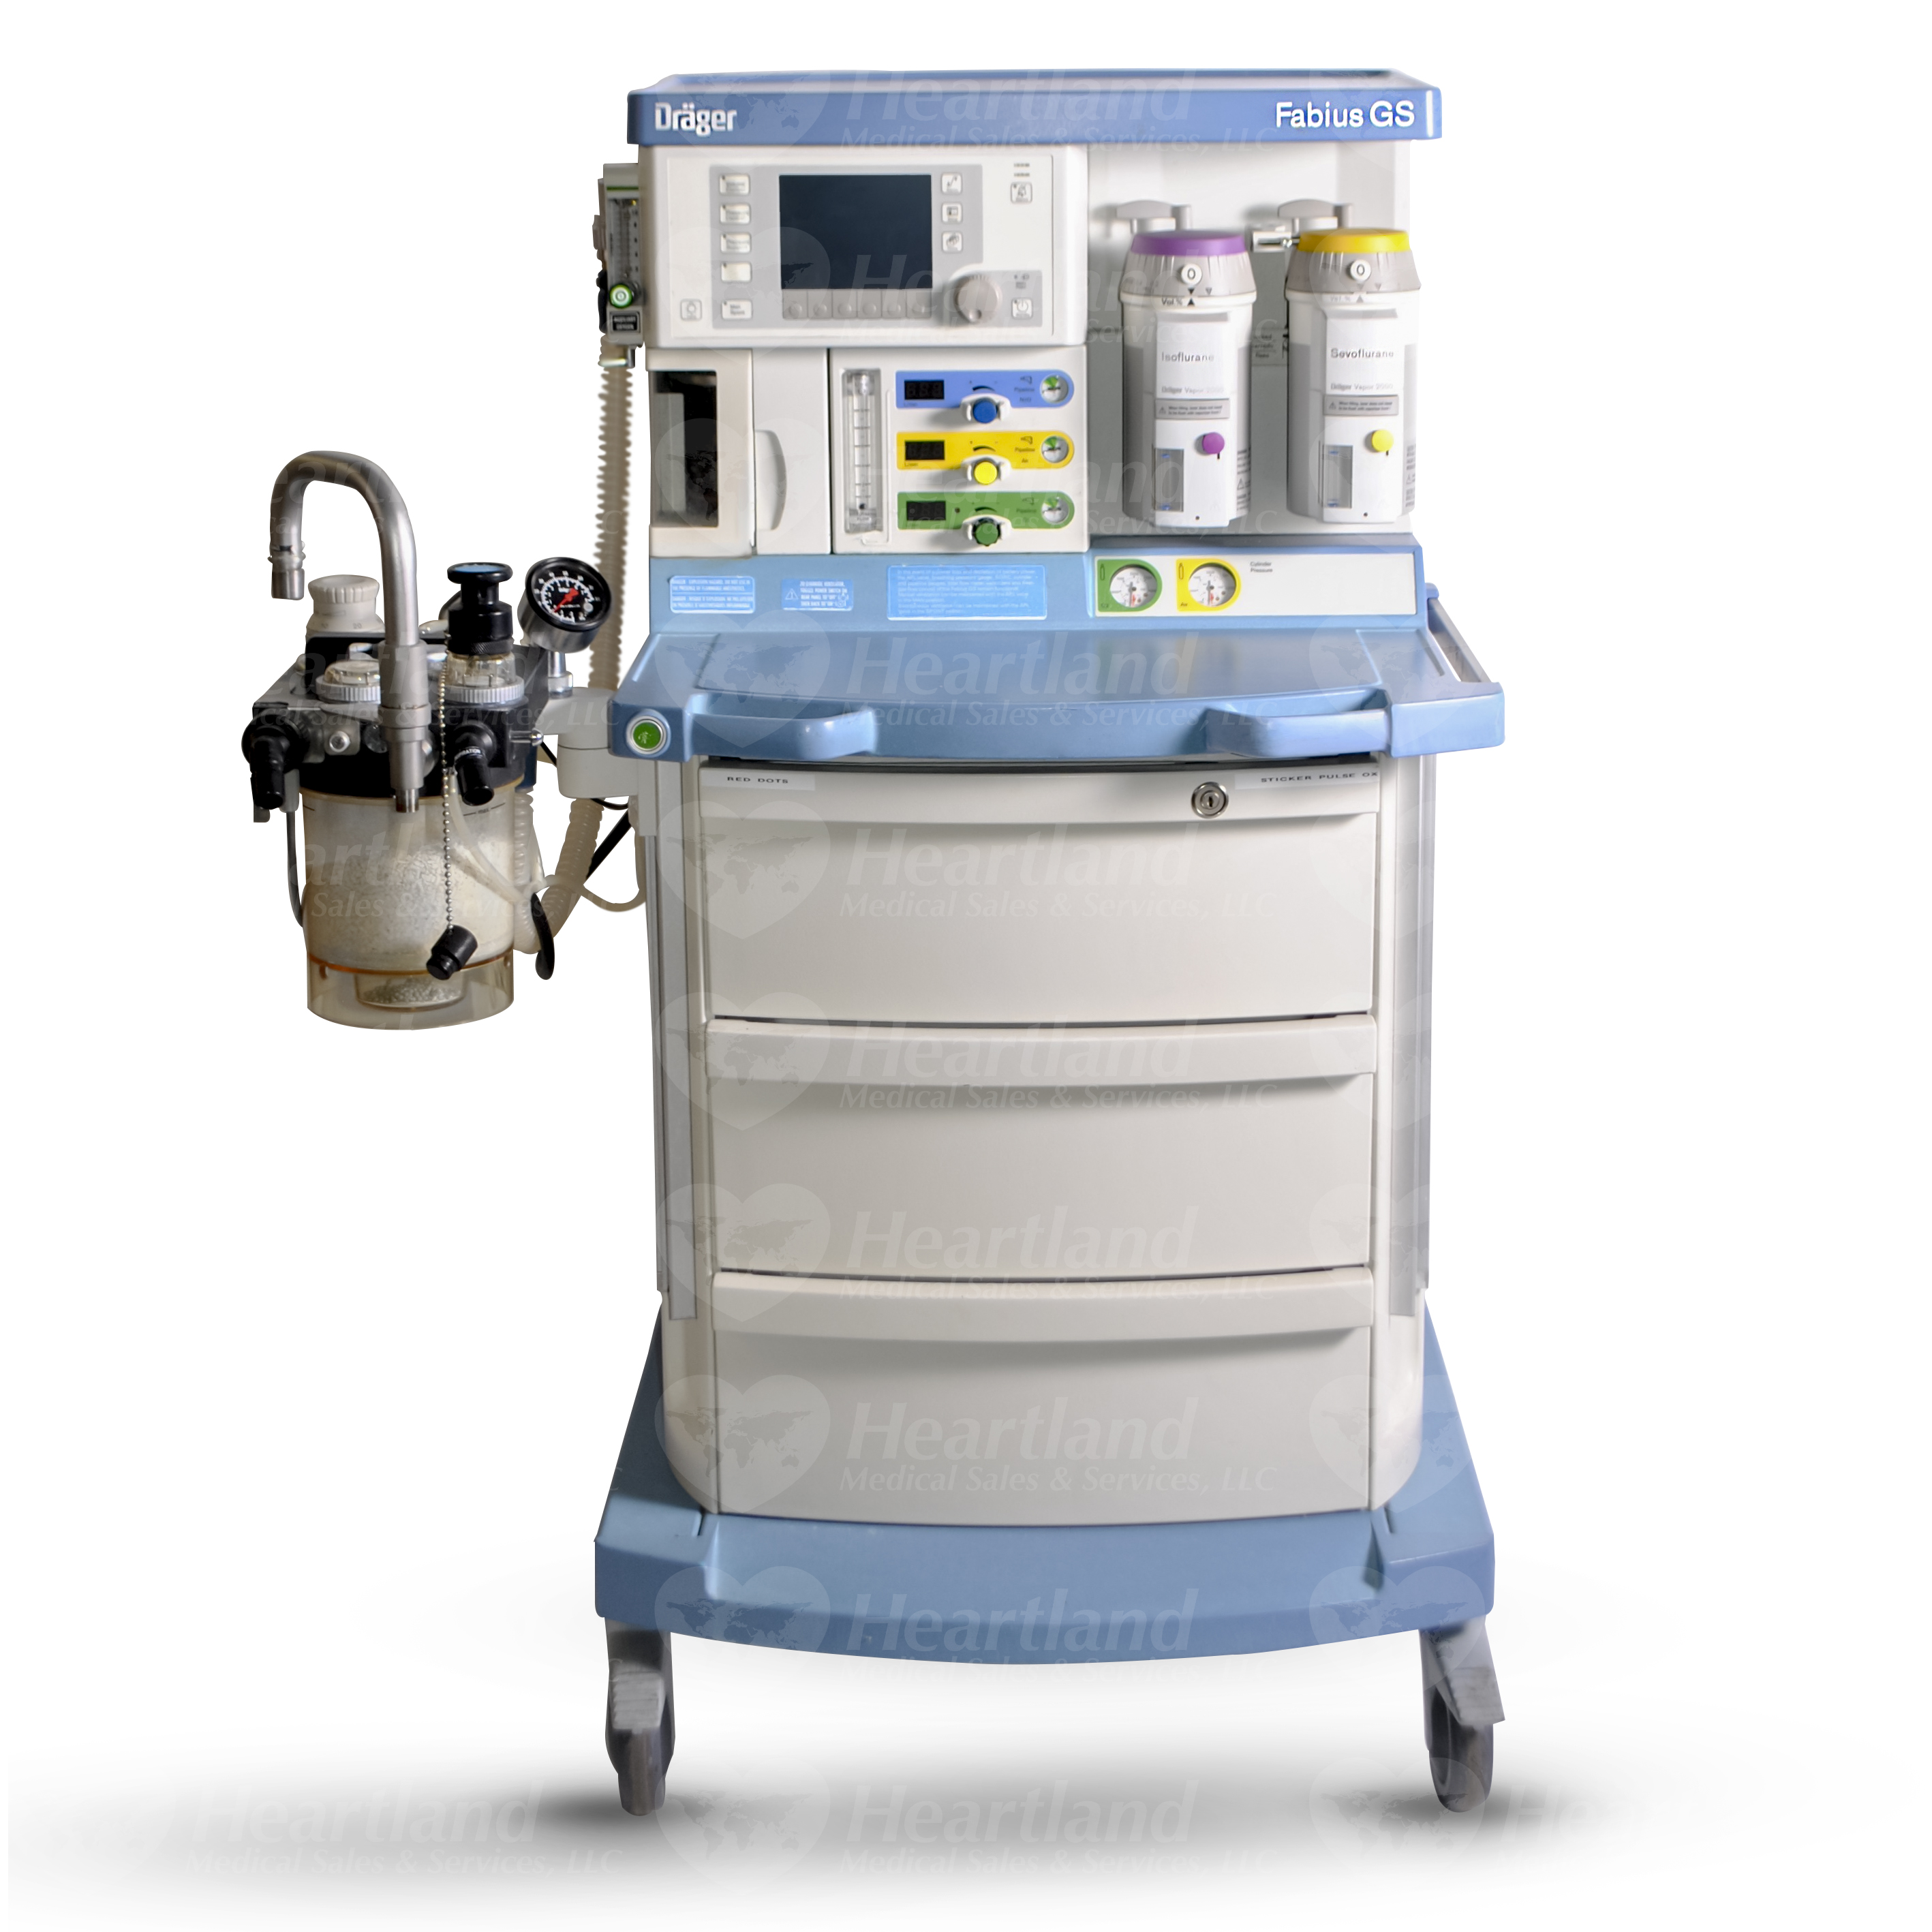 refurbished drager fabius gs anesthesia machine for sale rh heartlandmedical com 2000 Fuel Vaporizer 2000 Fuel Vaporizer